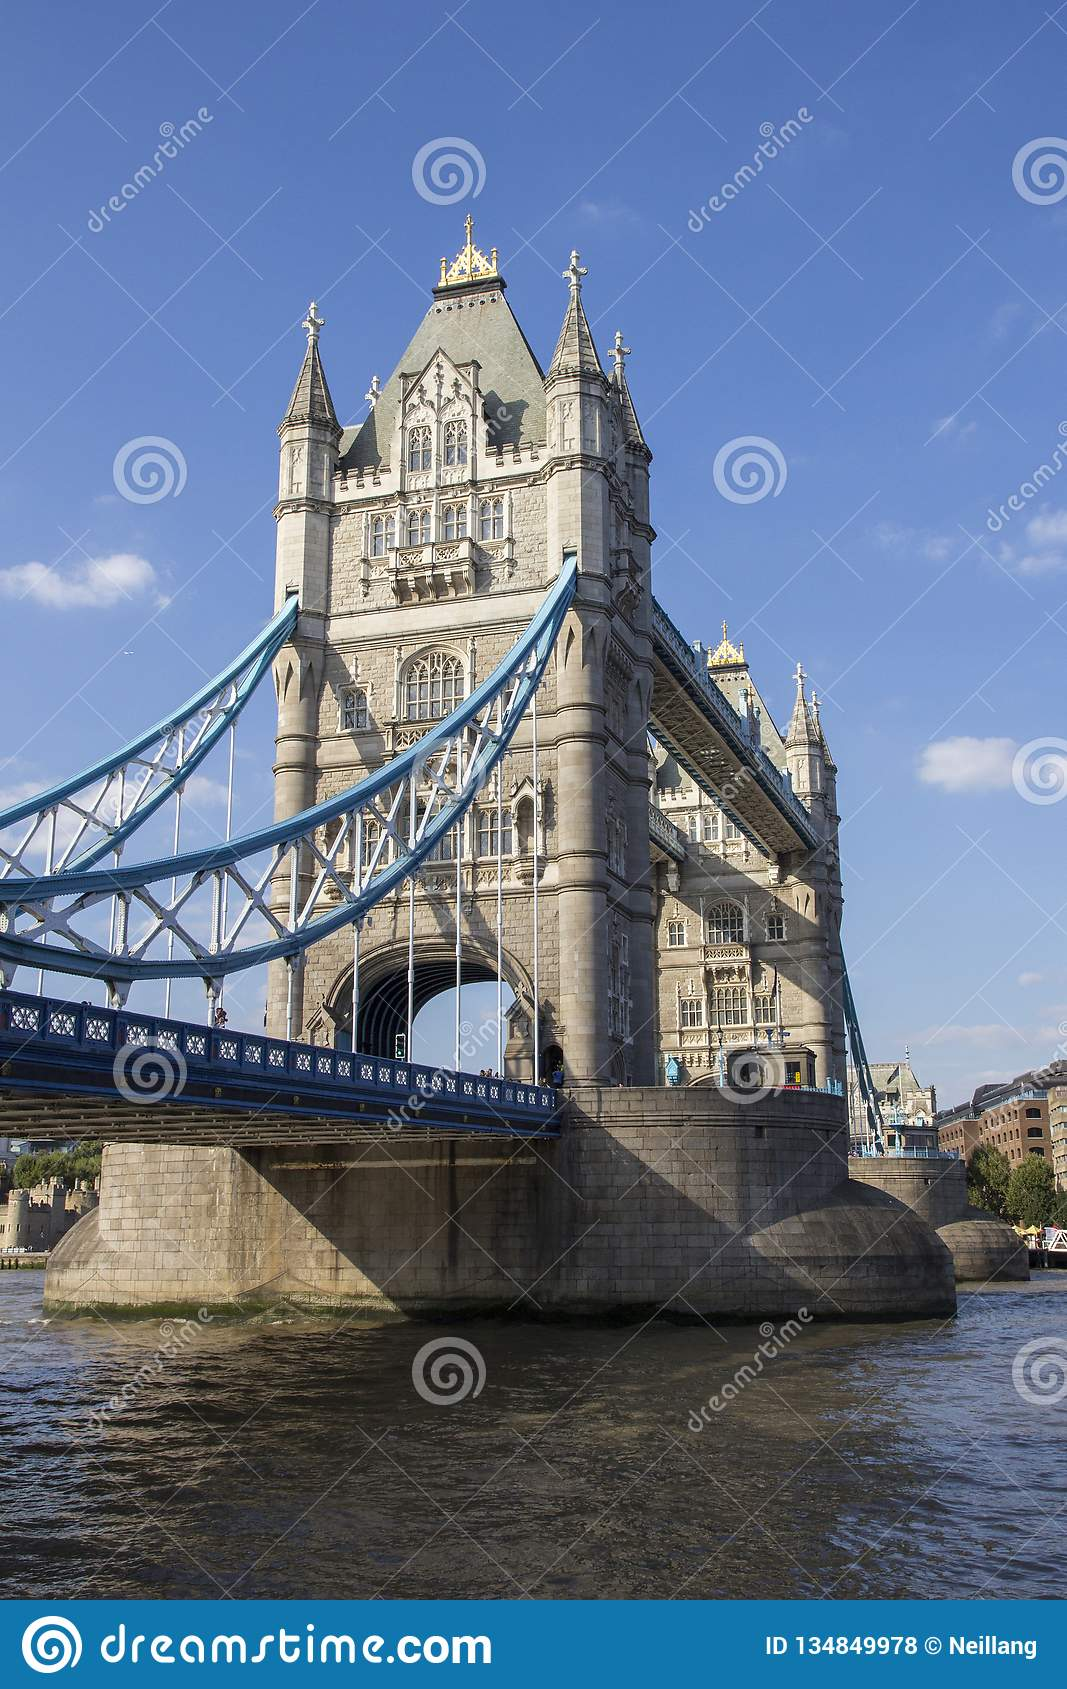 London cityscape across the River Thames with a view of Tower Bridge, London, England, UK,